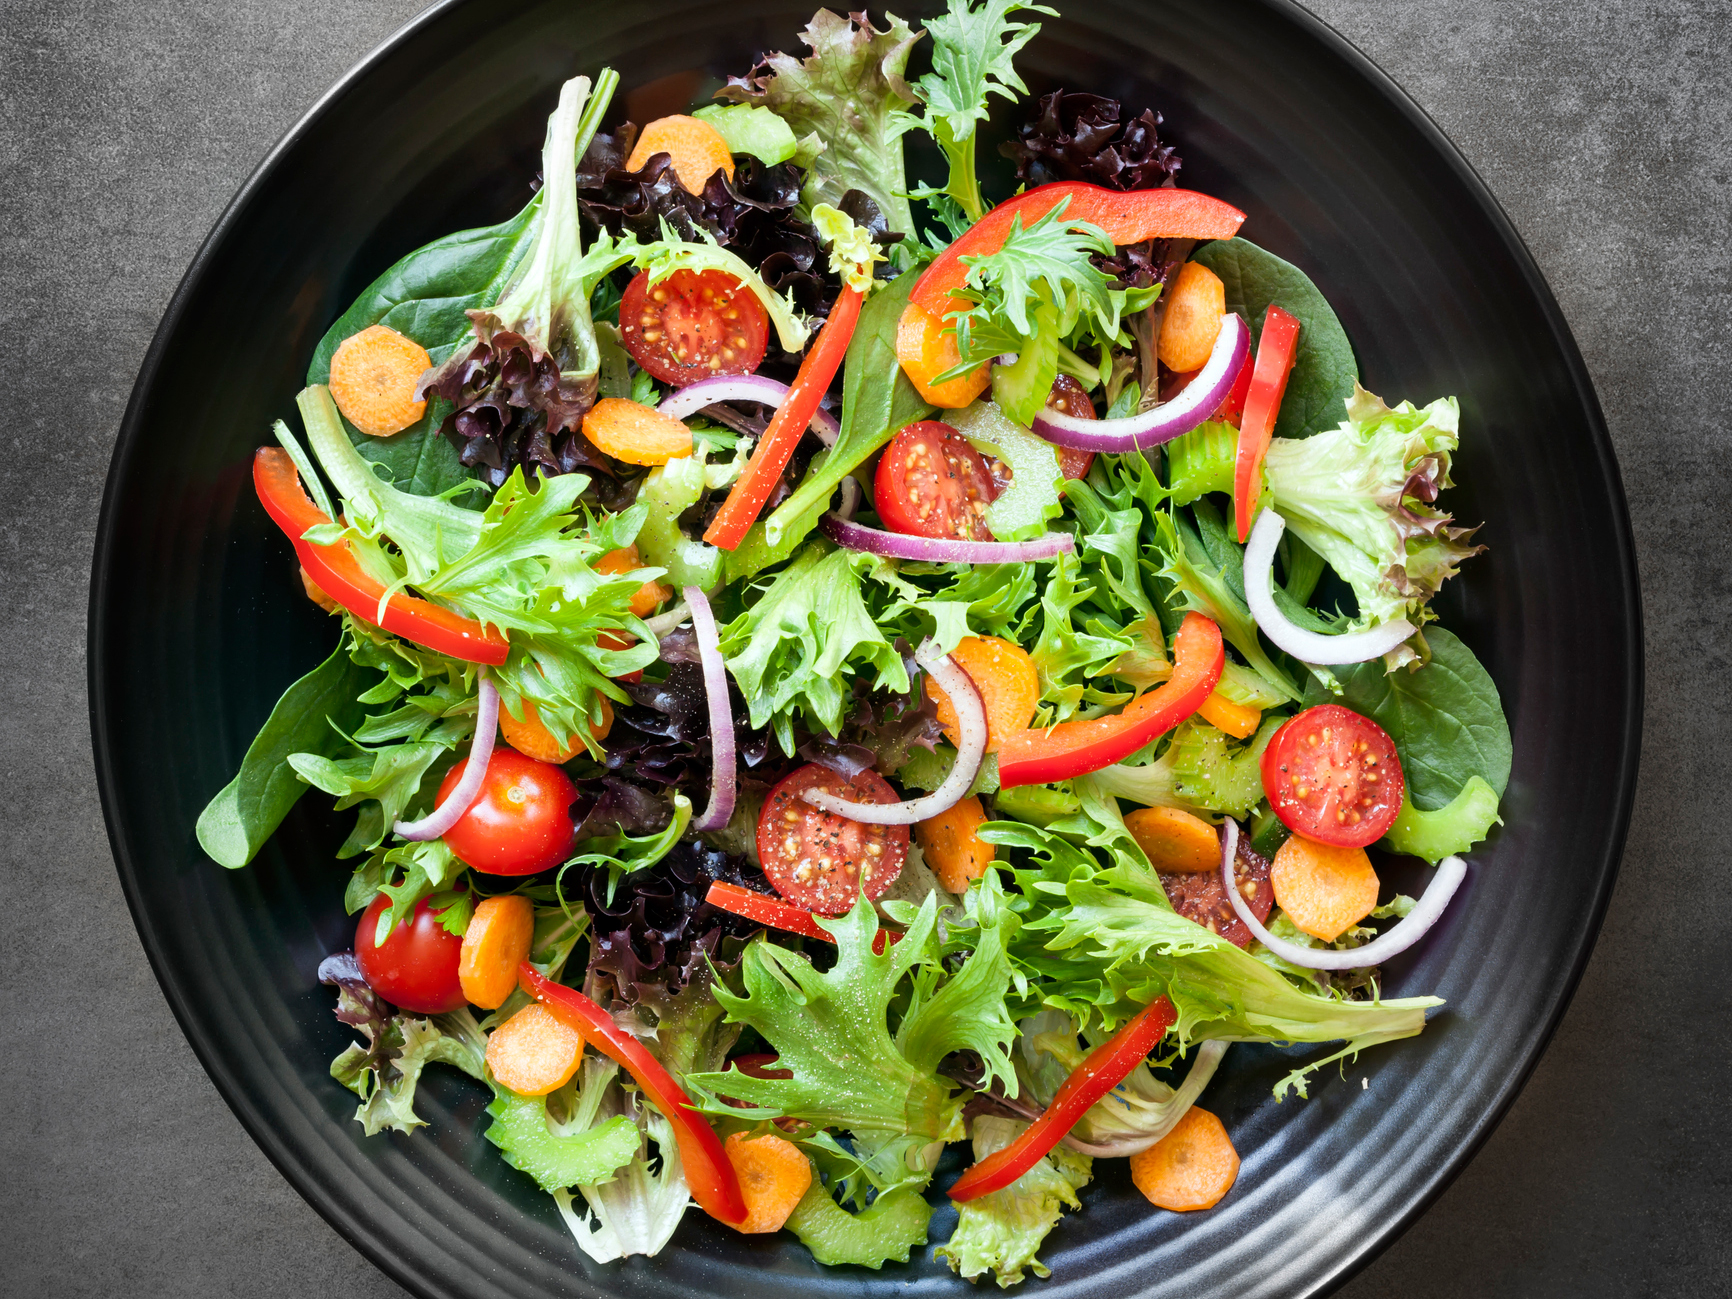 How to Choose the Healthiest Salad Greens photo